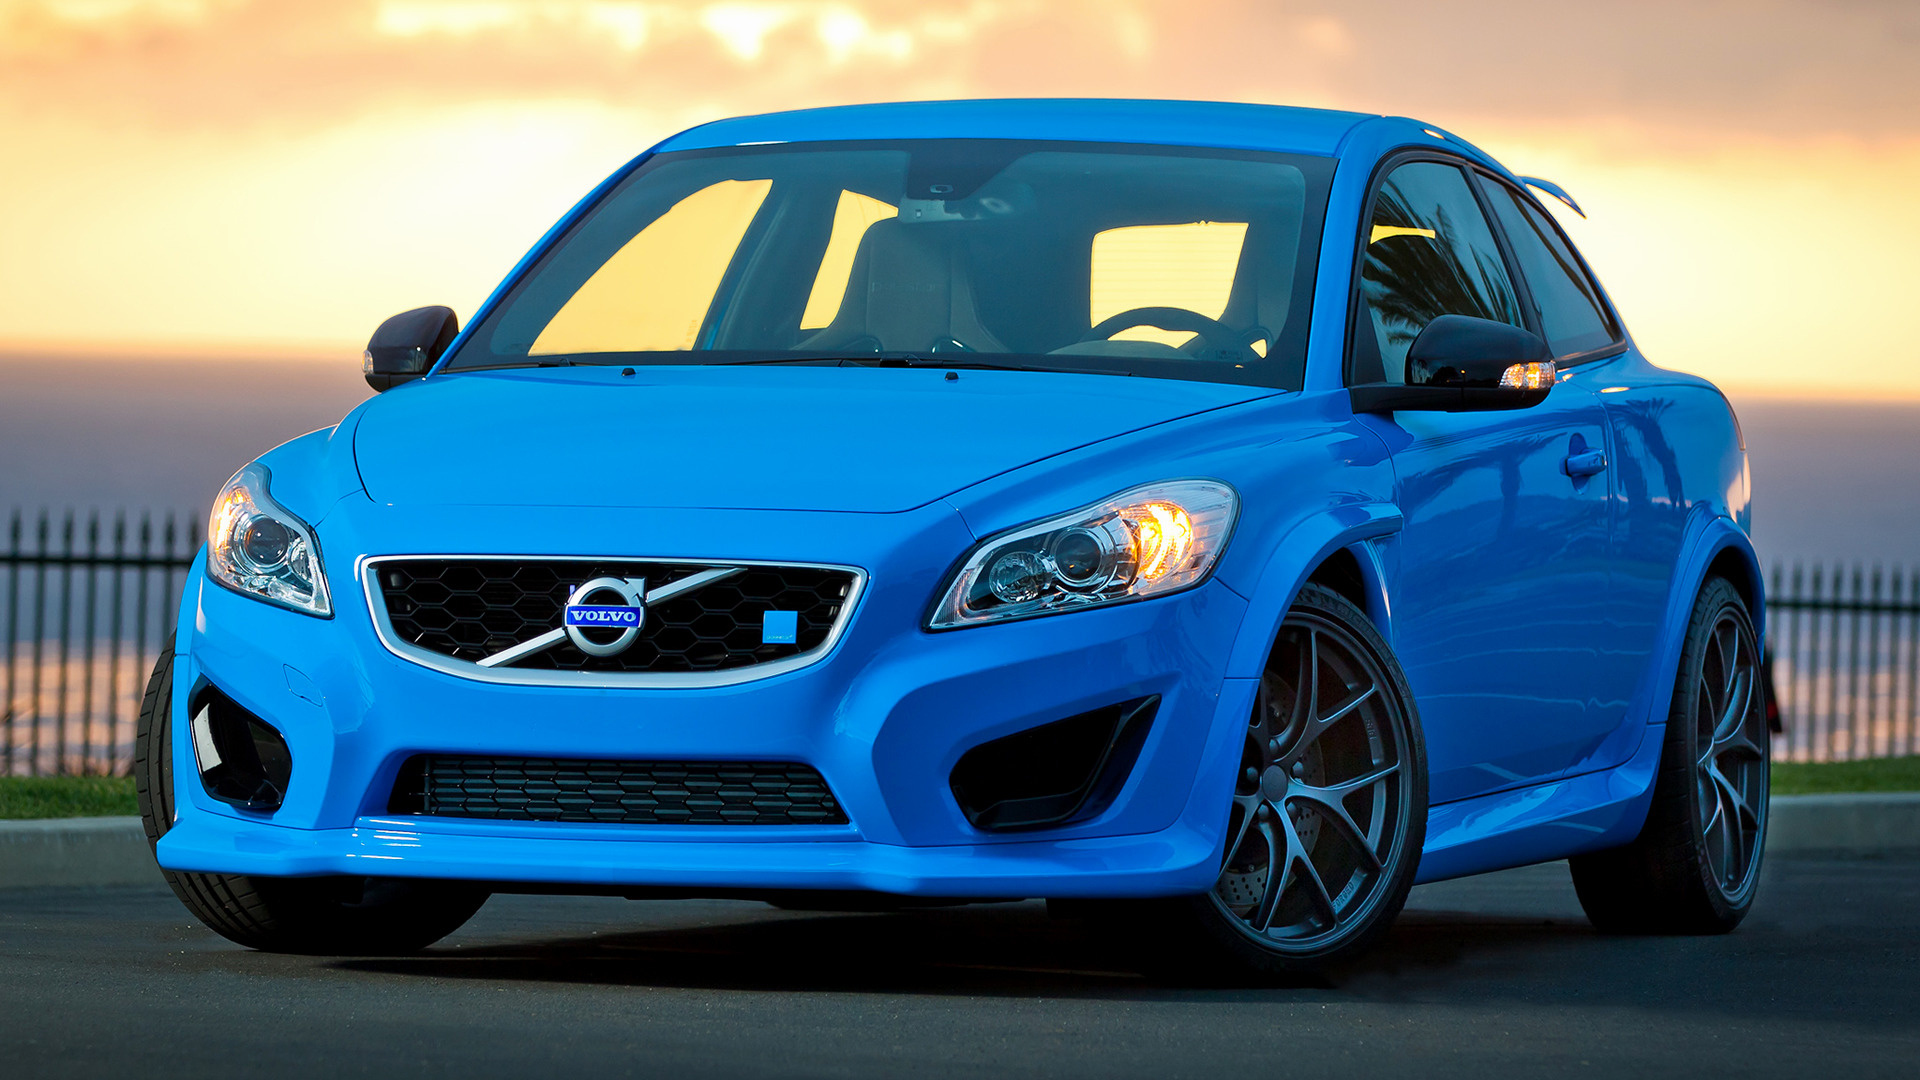 Volvo C30 Polestar Performance Concept 2010 Wallpapers and HD Images  Car Pixel